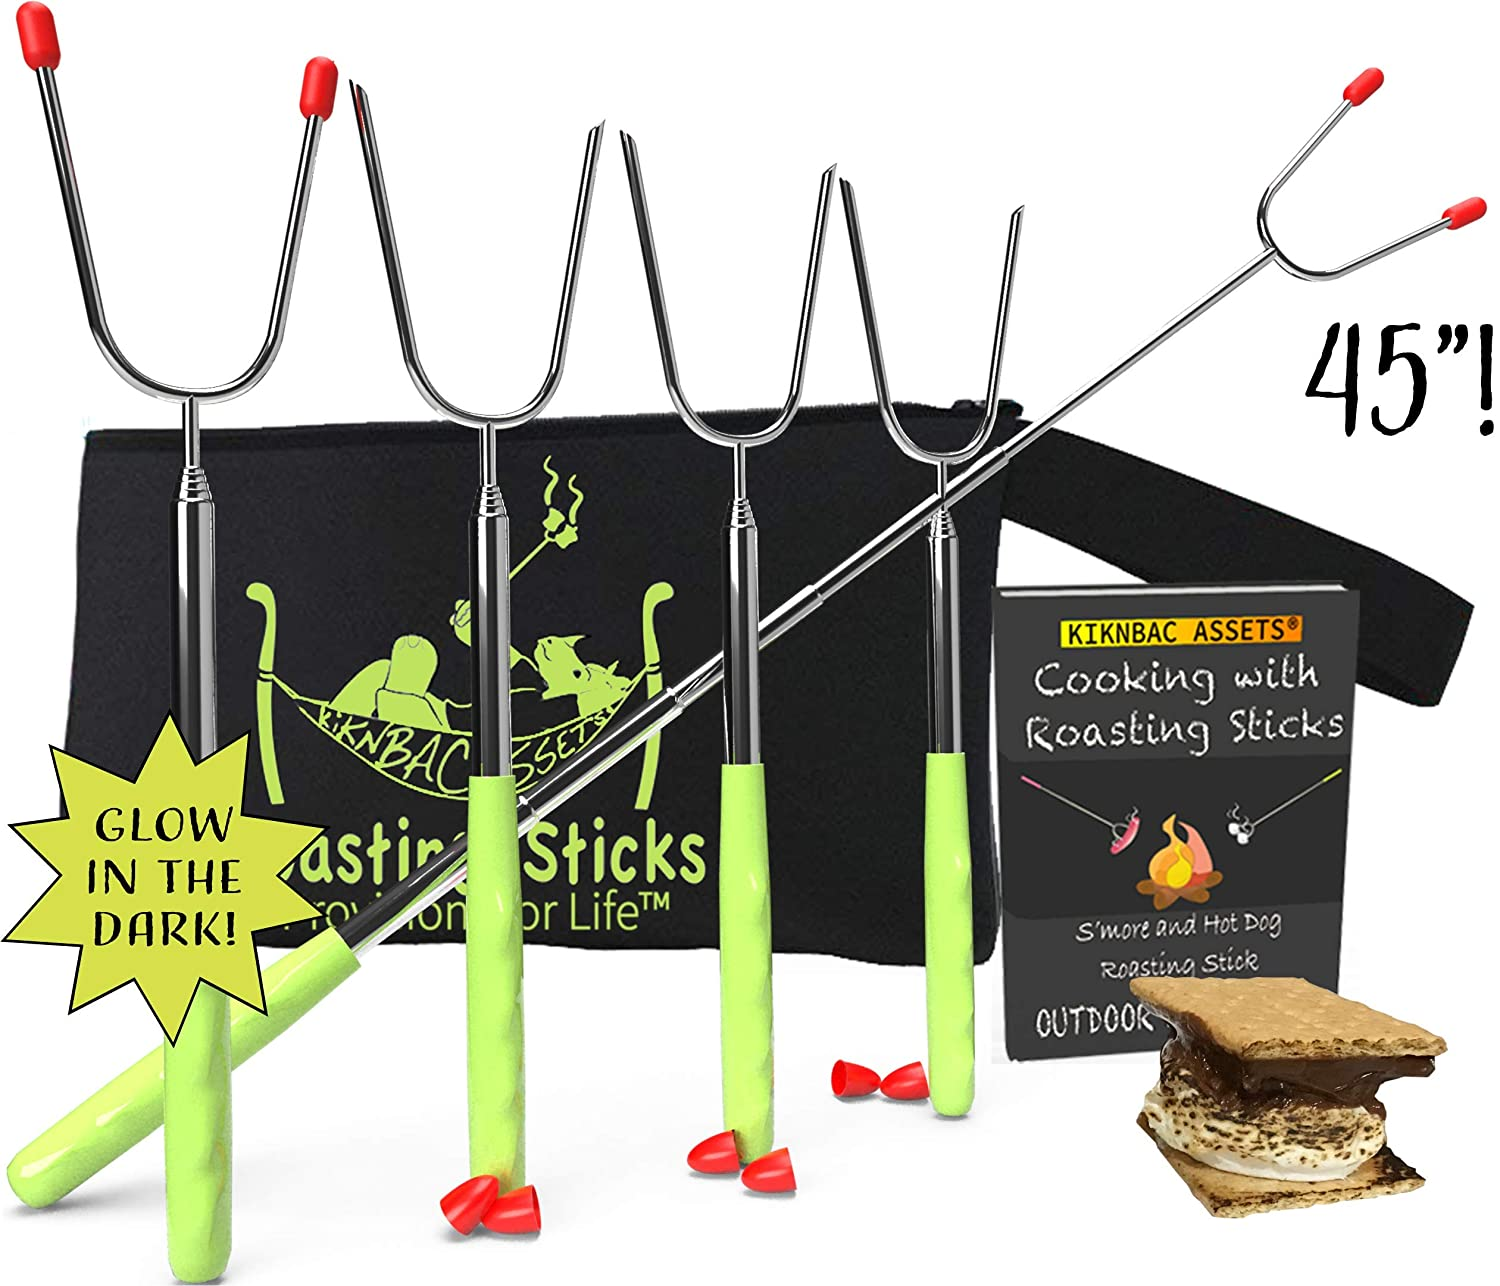 Marshmallow Roasting Sticks for Campfire | Smores Sticks for Fire Pit | Telescoping Hot Dog Roasting Sticks - Smores Skewers Extendable 45 inch Set of 5 Glow in The Dark Smores Kit for Fire Pit 81XZwm4h5eL